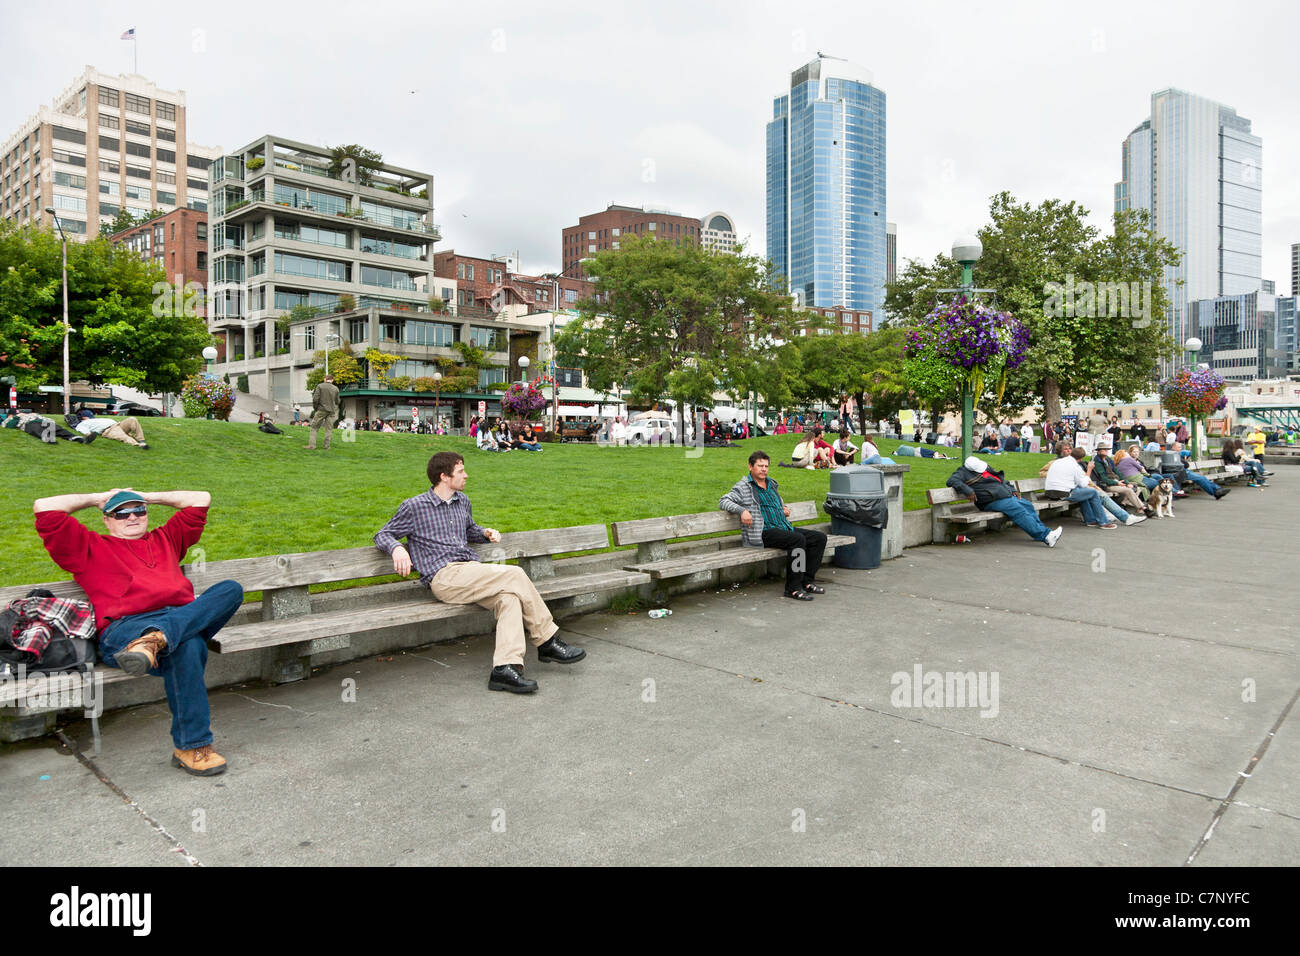 people enjoy sitting & lying on row of benches or raised lawn area of Victor Steinbrueck Park against backdrop - Stock Image